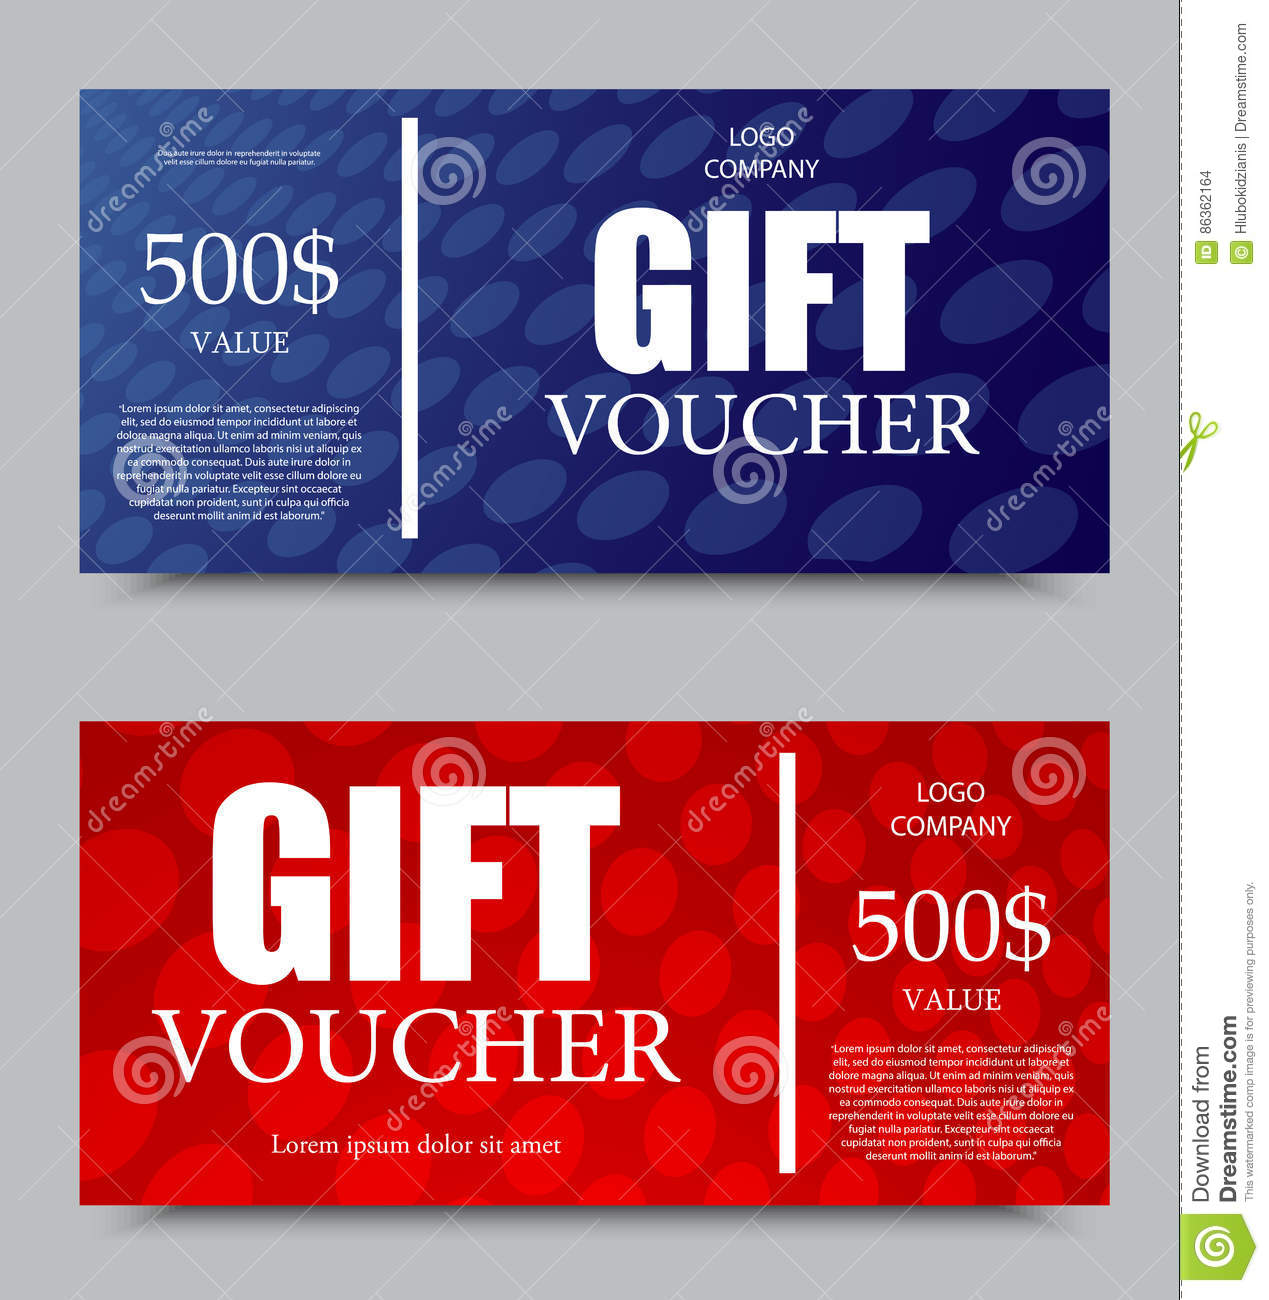 Gift company voucher template stock vector illustration of.